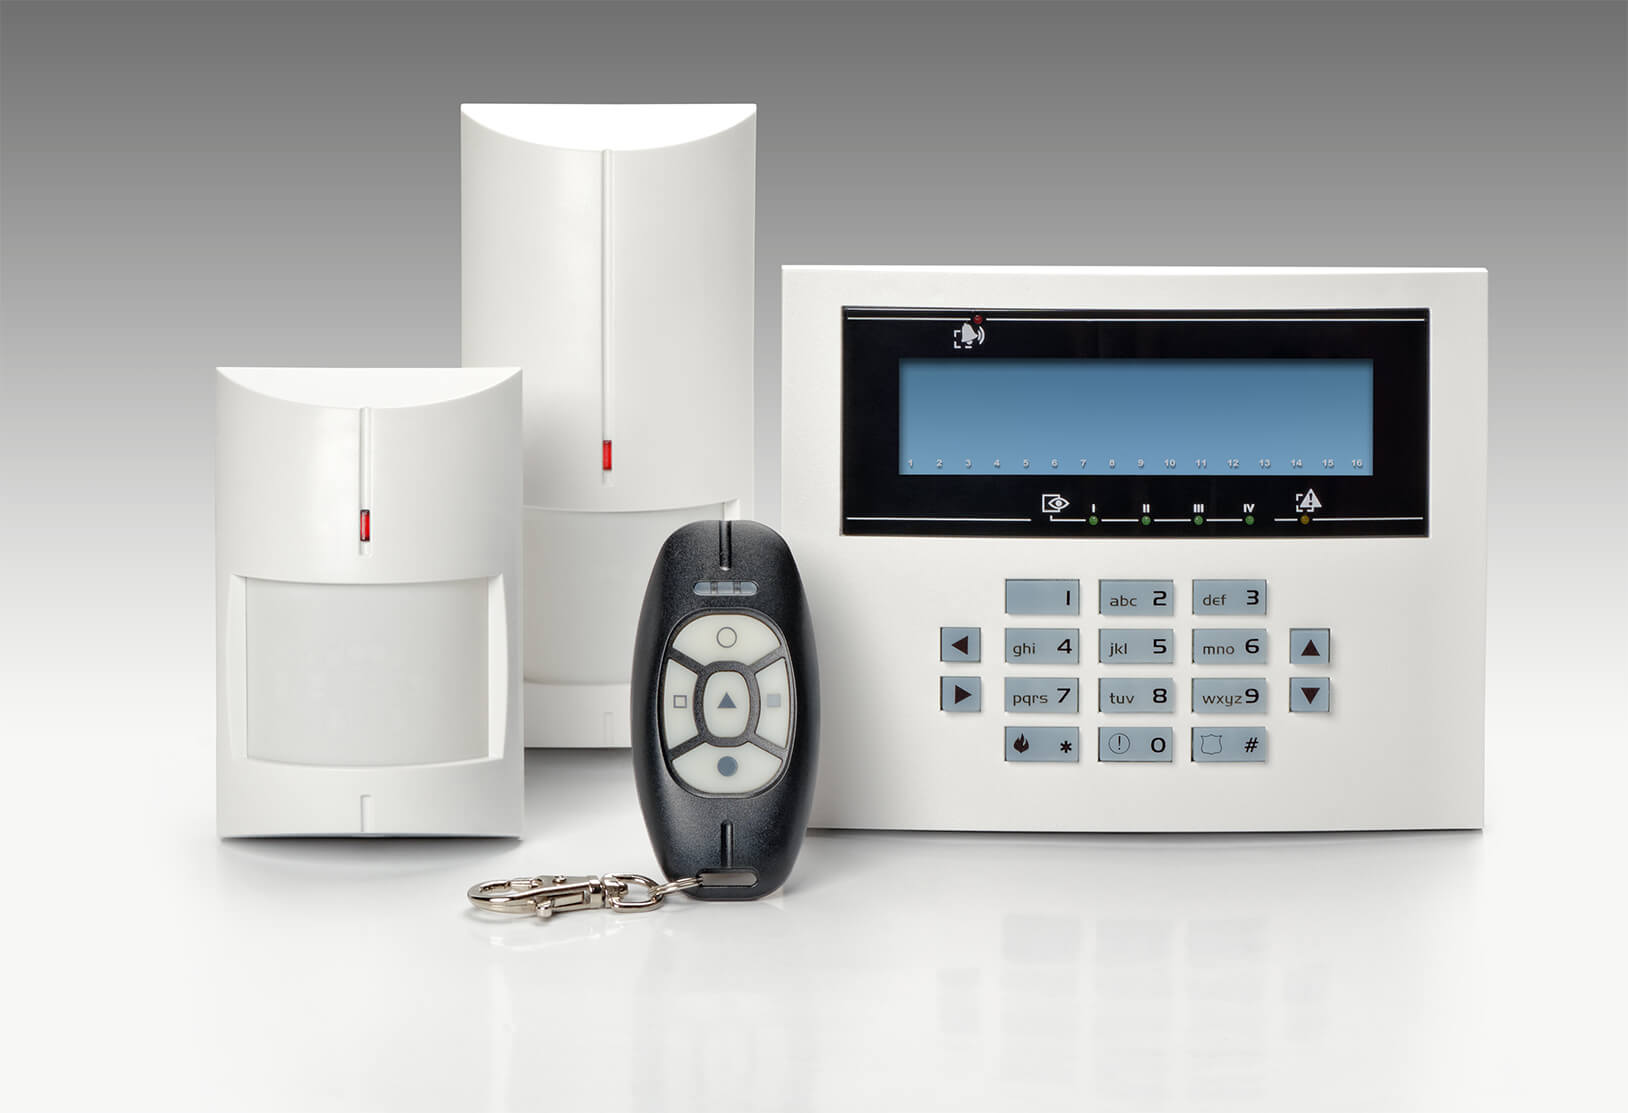 Burglar Alarms Repair in Leyton E17 - Local Leyton E17 alarm engineers.Call 02078872244 - See cost/price for burglar alarm repair and book your alarm engineer. No Hidden charges,No Contracts, Book as you need.Engineers on demand.All alarm makes repaired.Same day service ability.